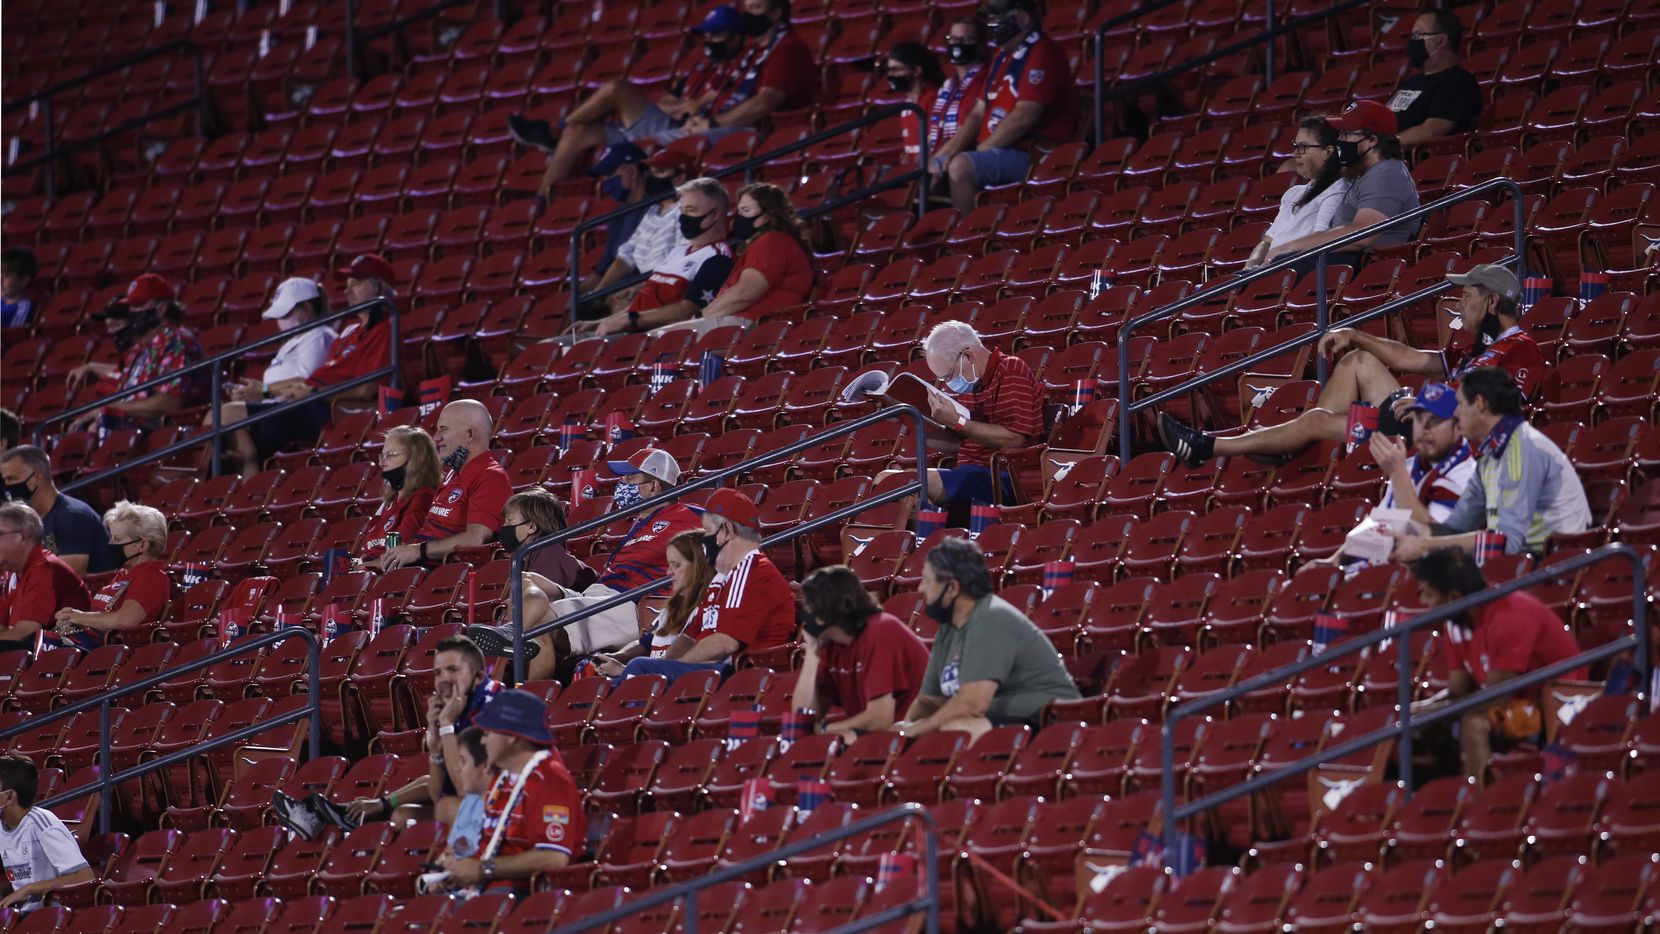 FC Dallas fans practice social distancing during first half action between FC Dallas and Sporting KC. The two teams, both members of the Western Conference of MLS, played their match at Toyota Stadium in Frisco on October 14, 2020.